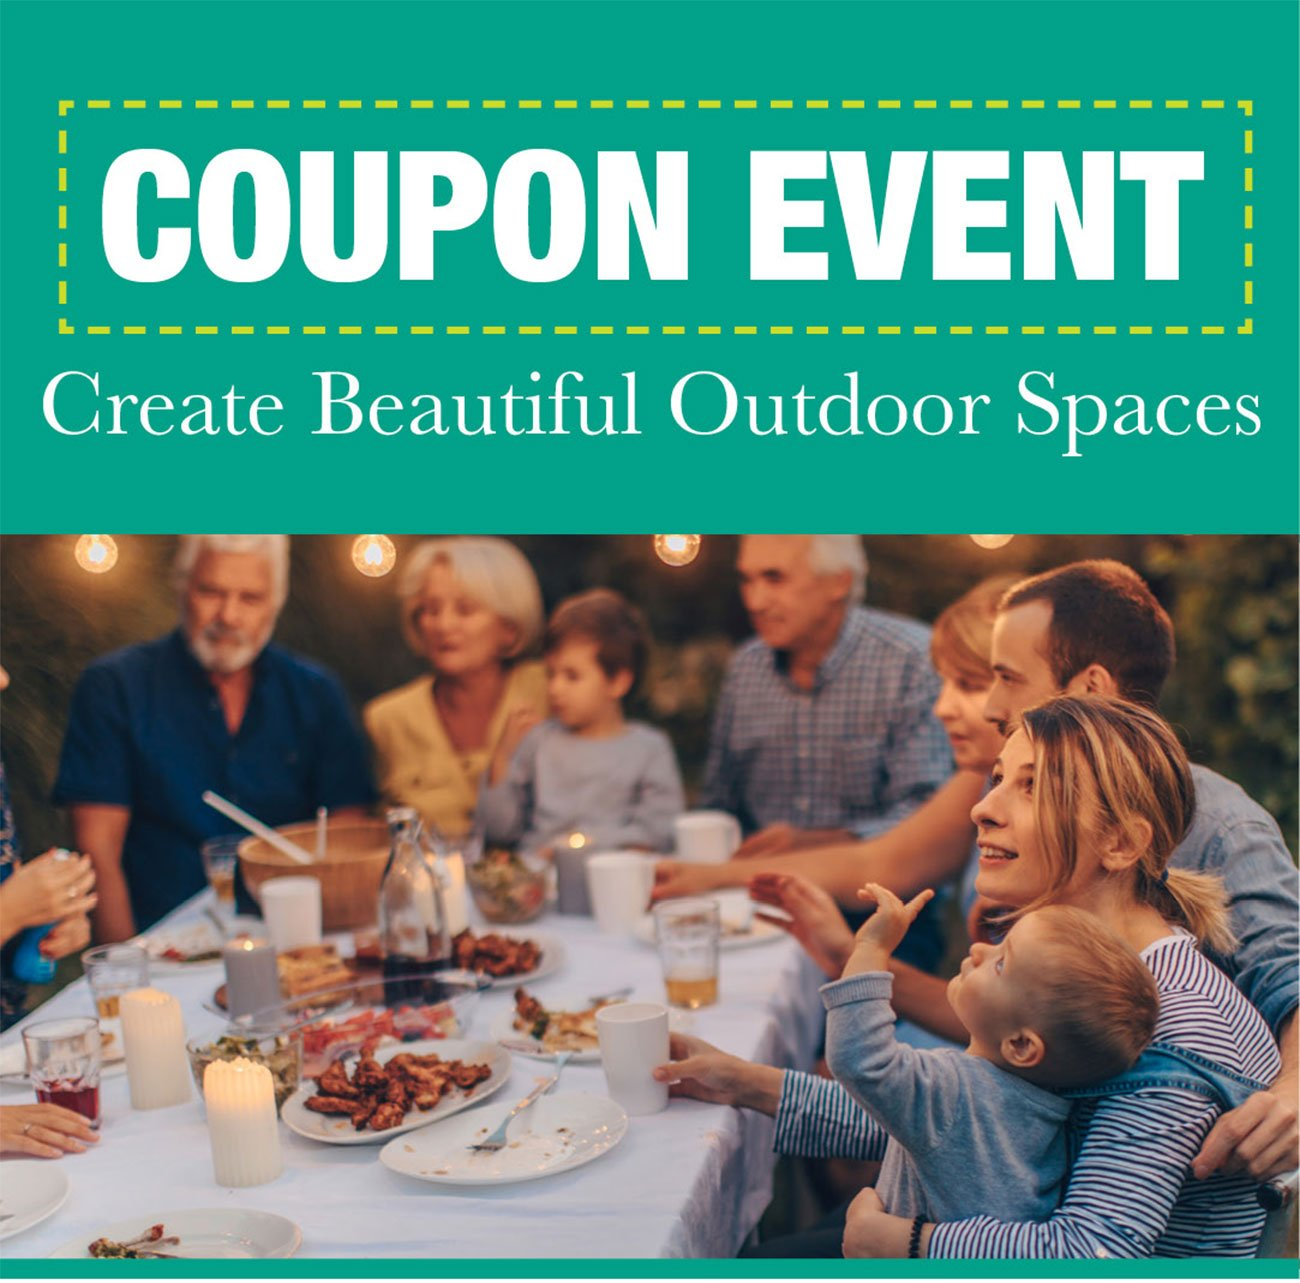 Coupon-Event-Outdoor-Spaces-Header